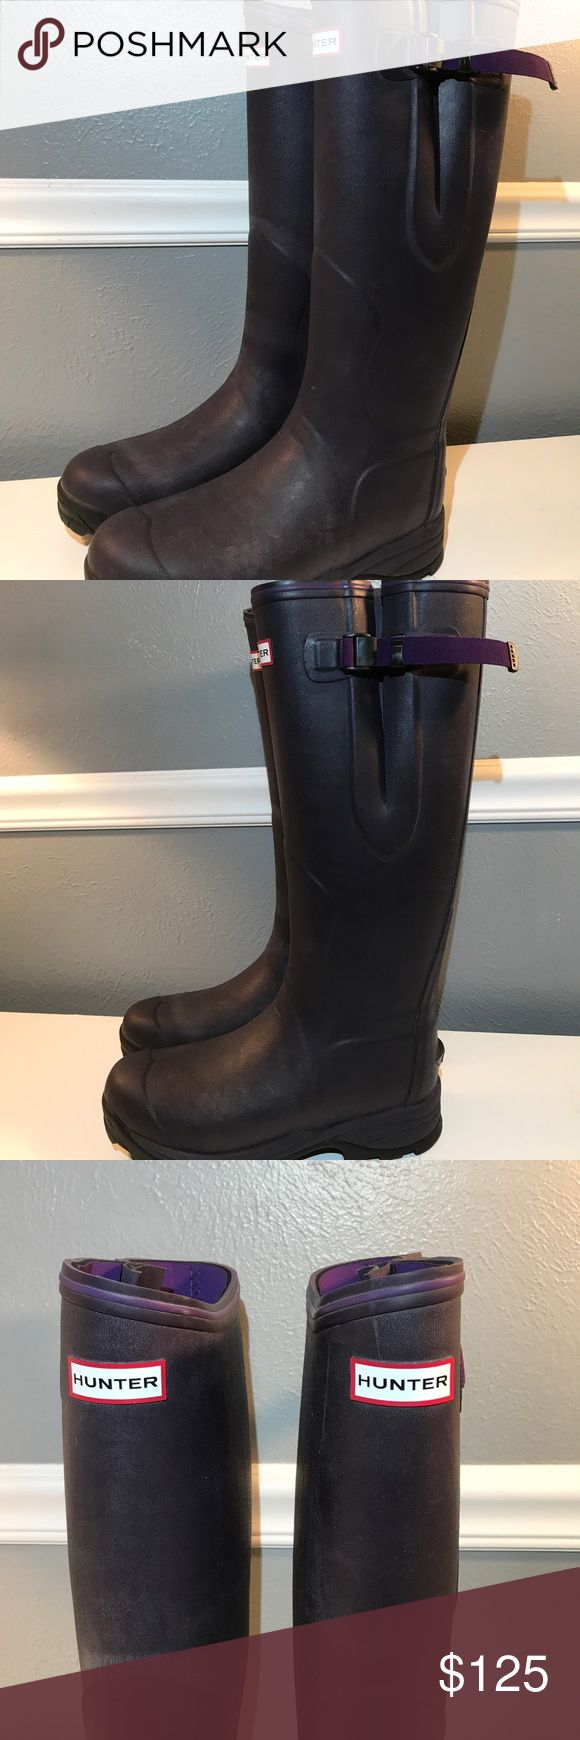 "Hunter Balmoral Neoprene Lined Adjustable Boots. Solid, heavy duty 'Balmoral' rubber boots by Hunter. US8. Reinforced sole for added stability and traction. Tab on the heel to assist in removing them. Adjustable leg to allow for wider fit if needed. Dark purple/eggplant color. Never worn. Please note there's a white powdery ""bloom"" on the leg of the right boot. This is common with Hunter boots and can be removed with Hunter Cleaning products. This is a really great boot - don't miss out…"